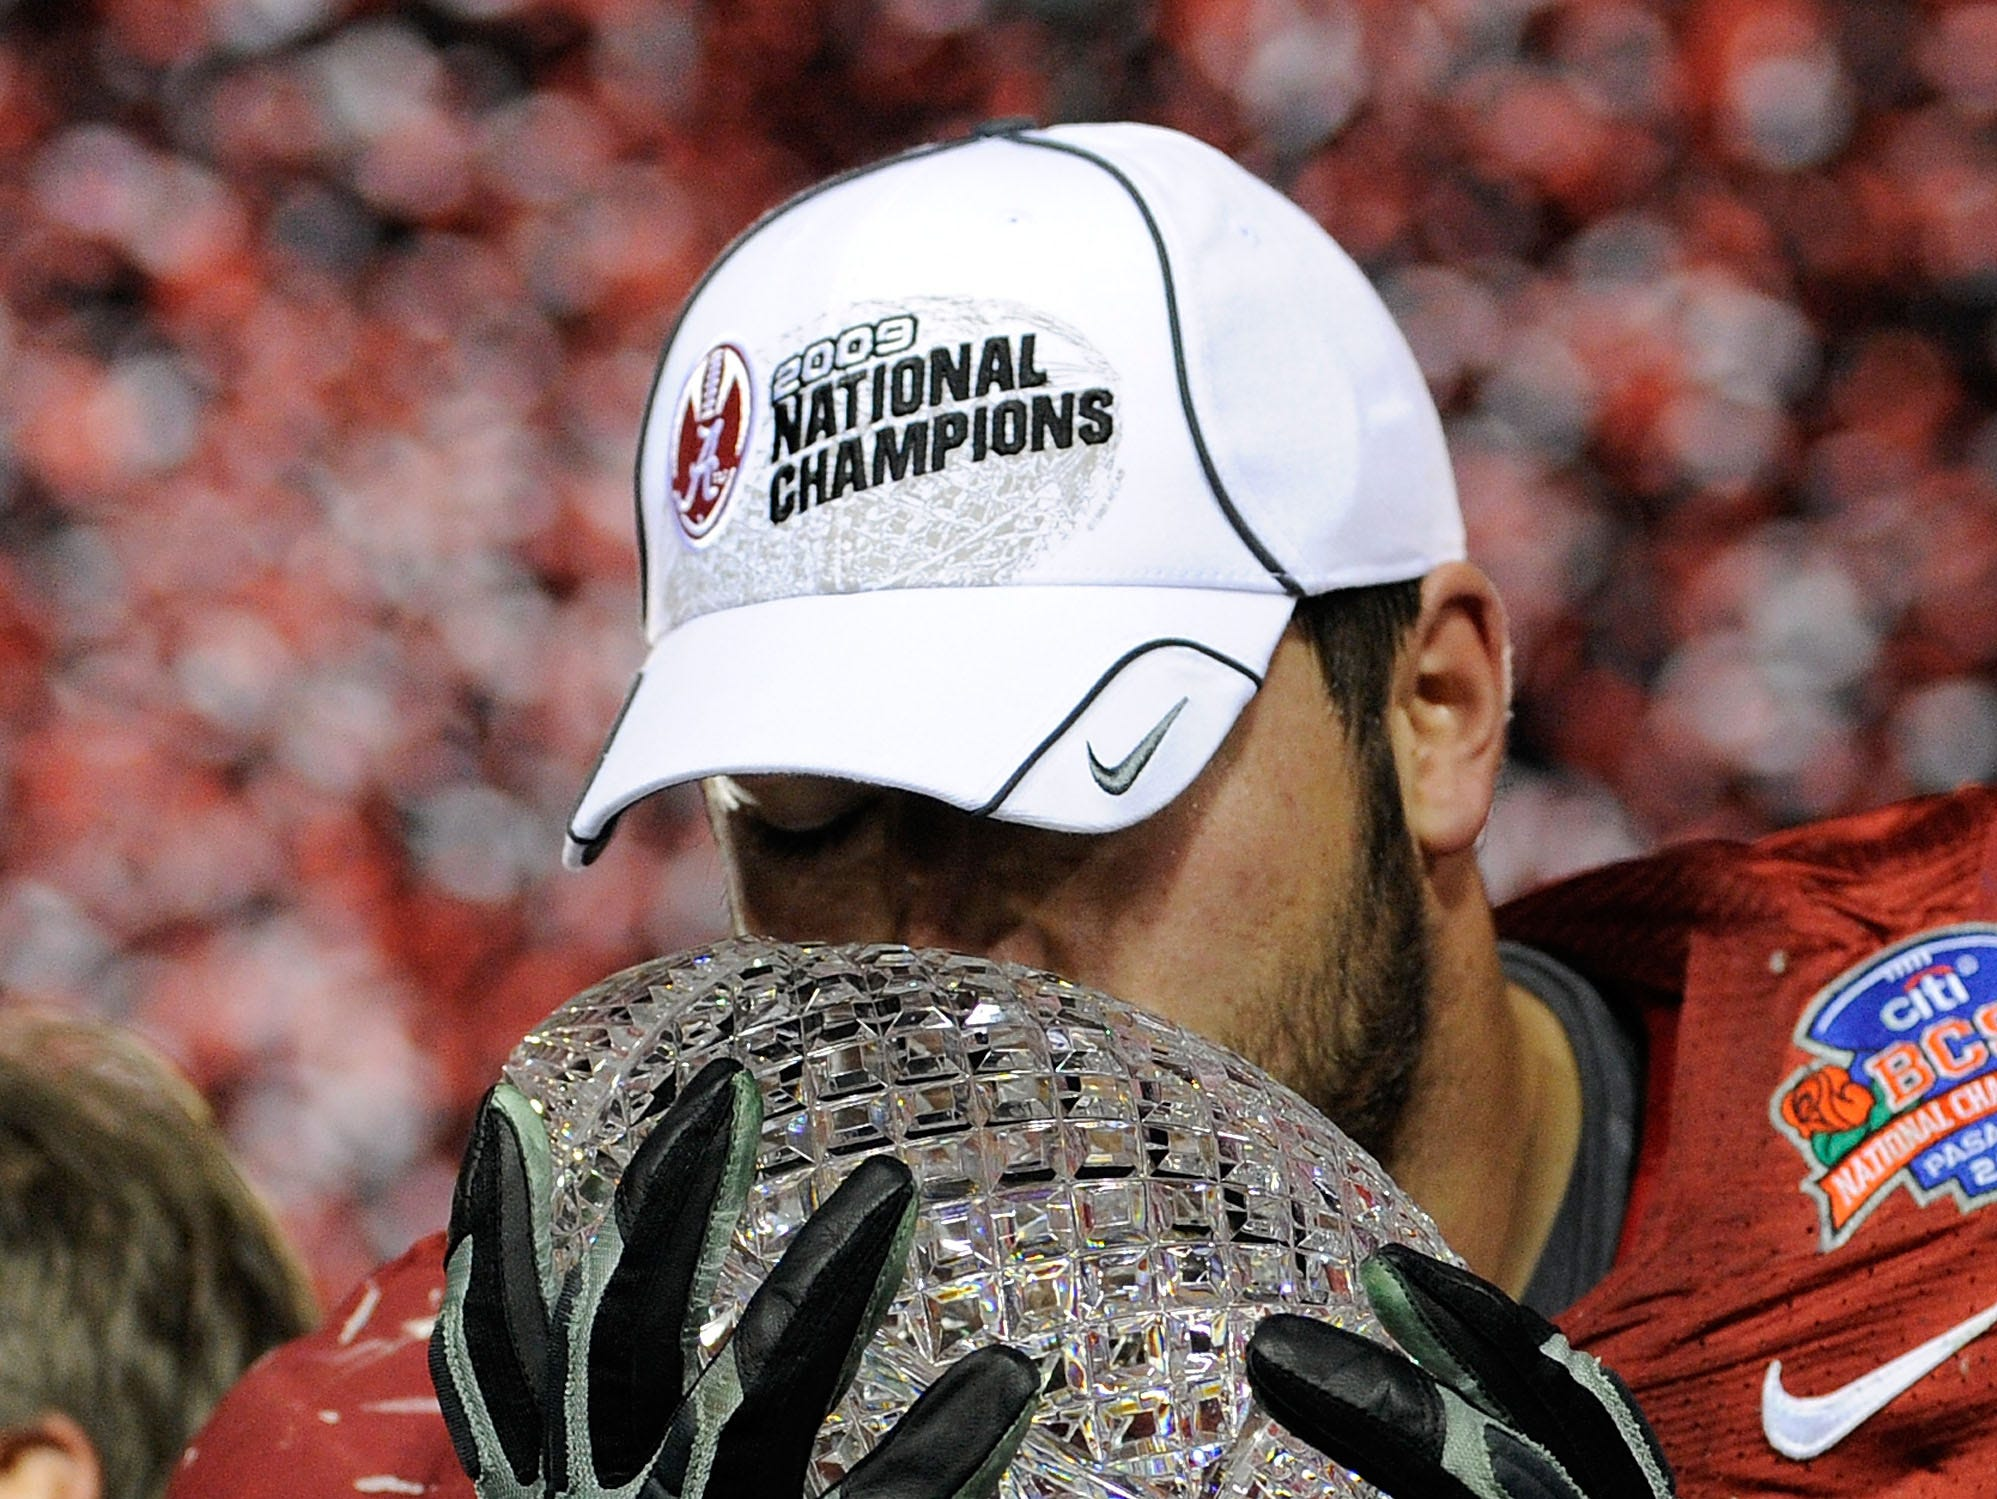 PASADENA, CA - JANUARY 07:  Lineman Mike Johnson #78 of the Alabama Crimson Tide kisses the BCS Championship trophy after winning the Citi BCS National Championship game over the Texas Longhorns at the Rose Bowl on January 7, 2010 in Pasadena, California. The Crimson Tide defeated the Longhorns 37-21.  (Photo by Kevork Djansezian/Getty Images)